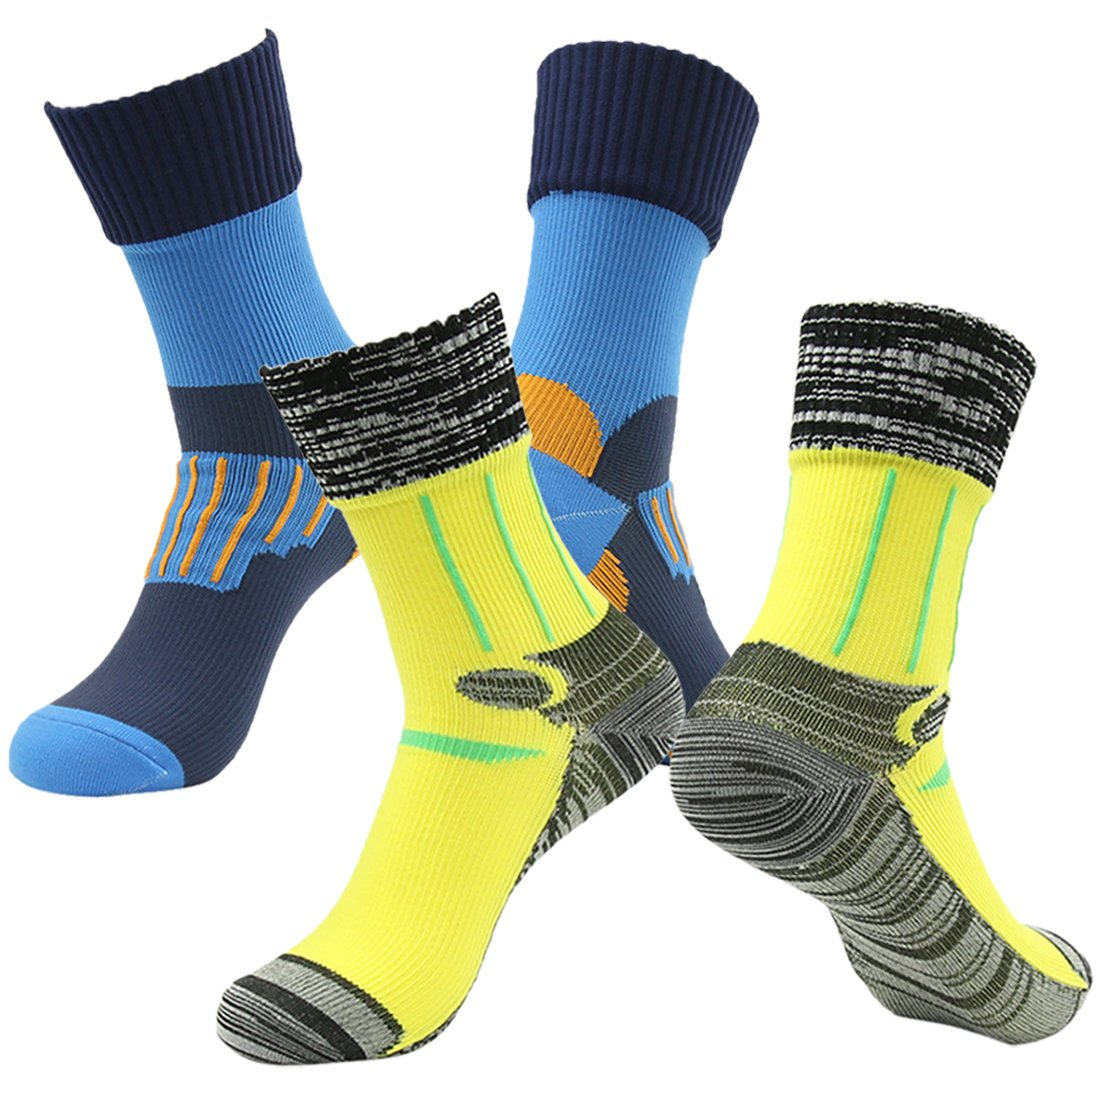 Soccer Tournament Waterproof Socks, RANDY SUN Men's 2 Pairs Non-Binding Running Socks For Athletic Blue&Yellow XS